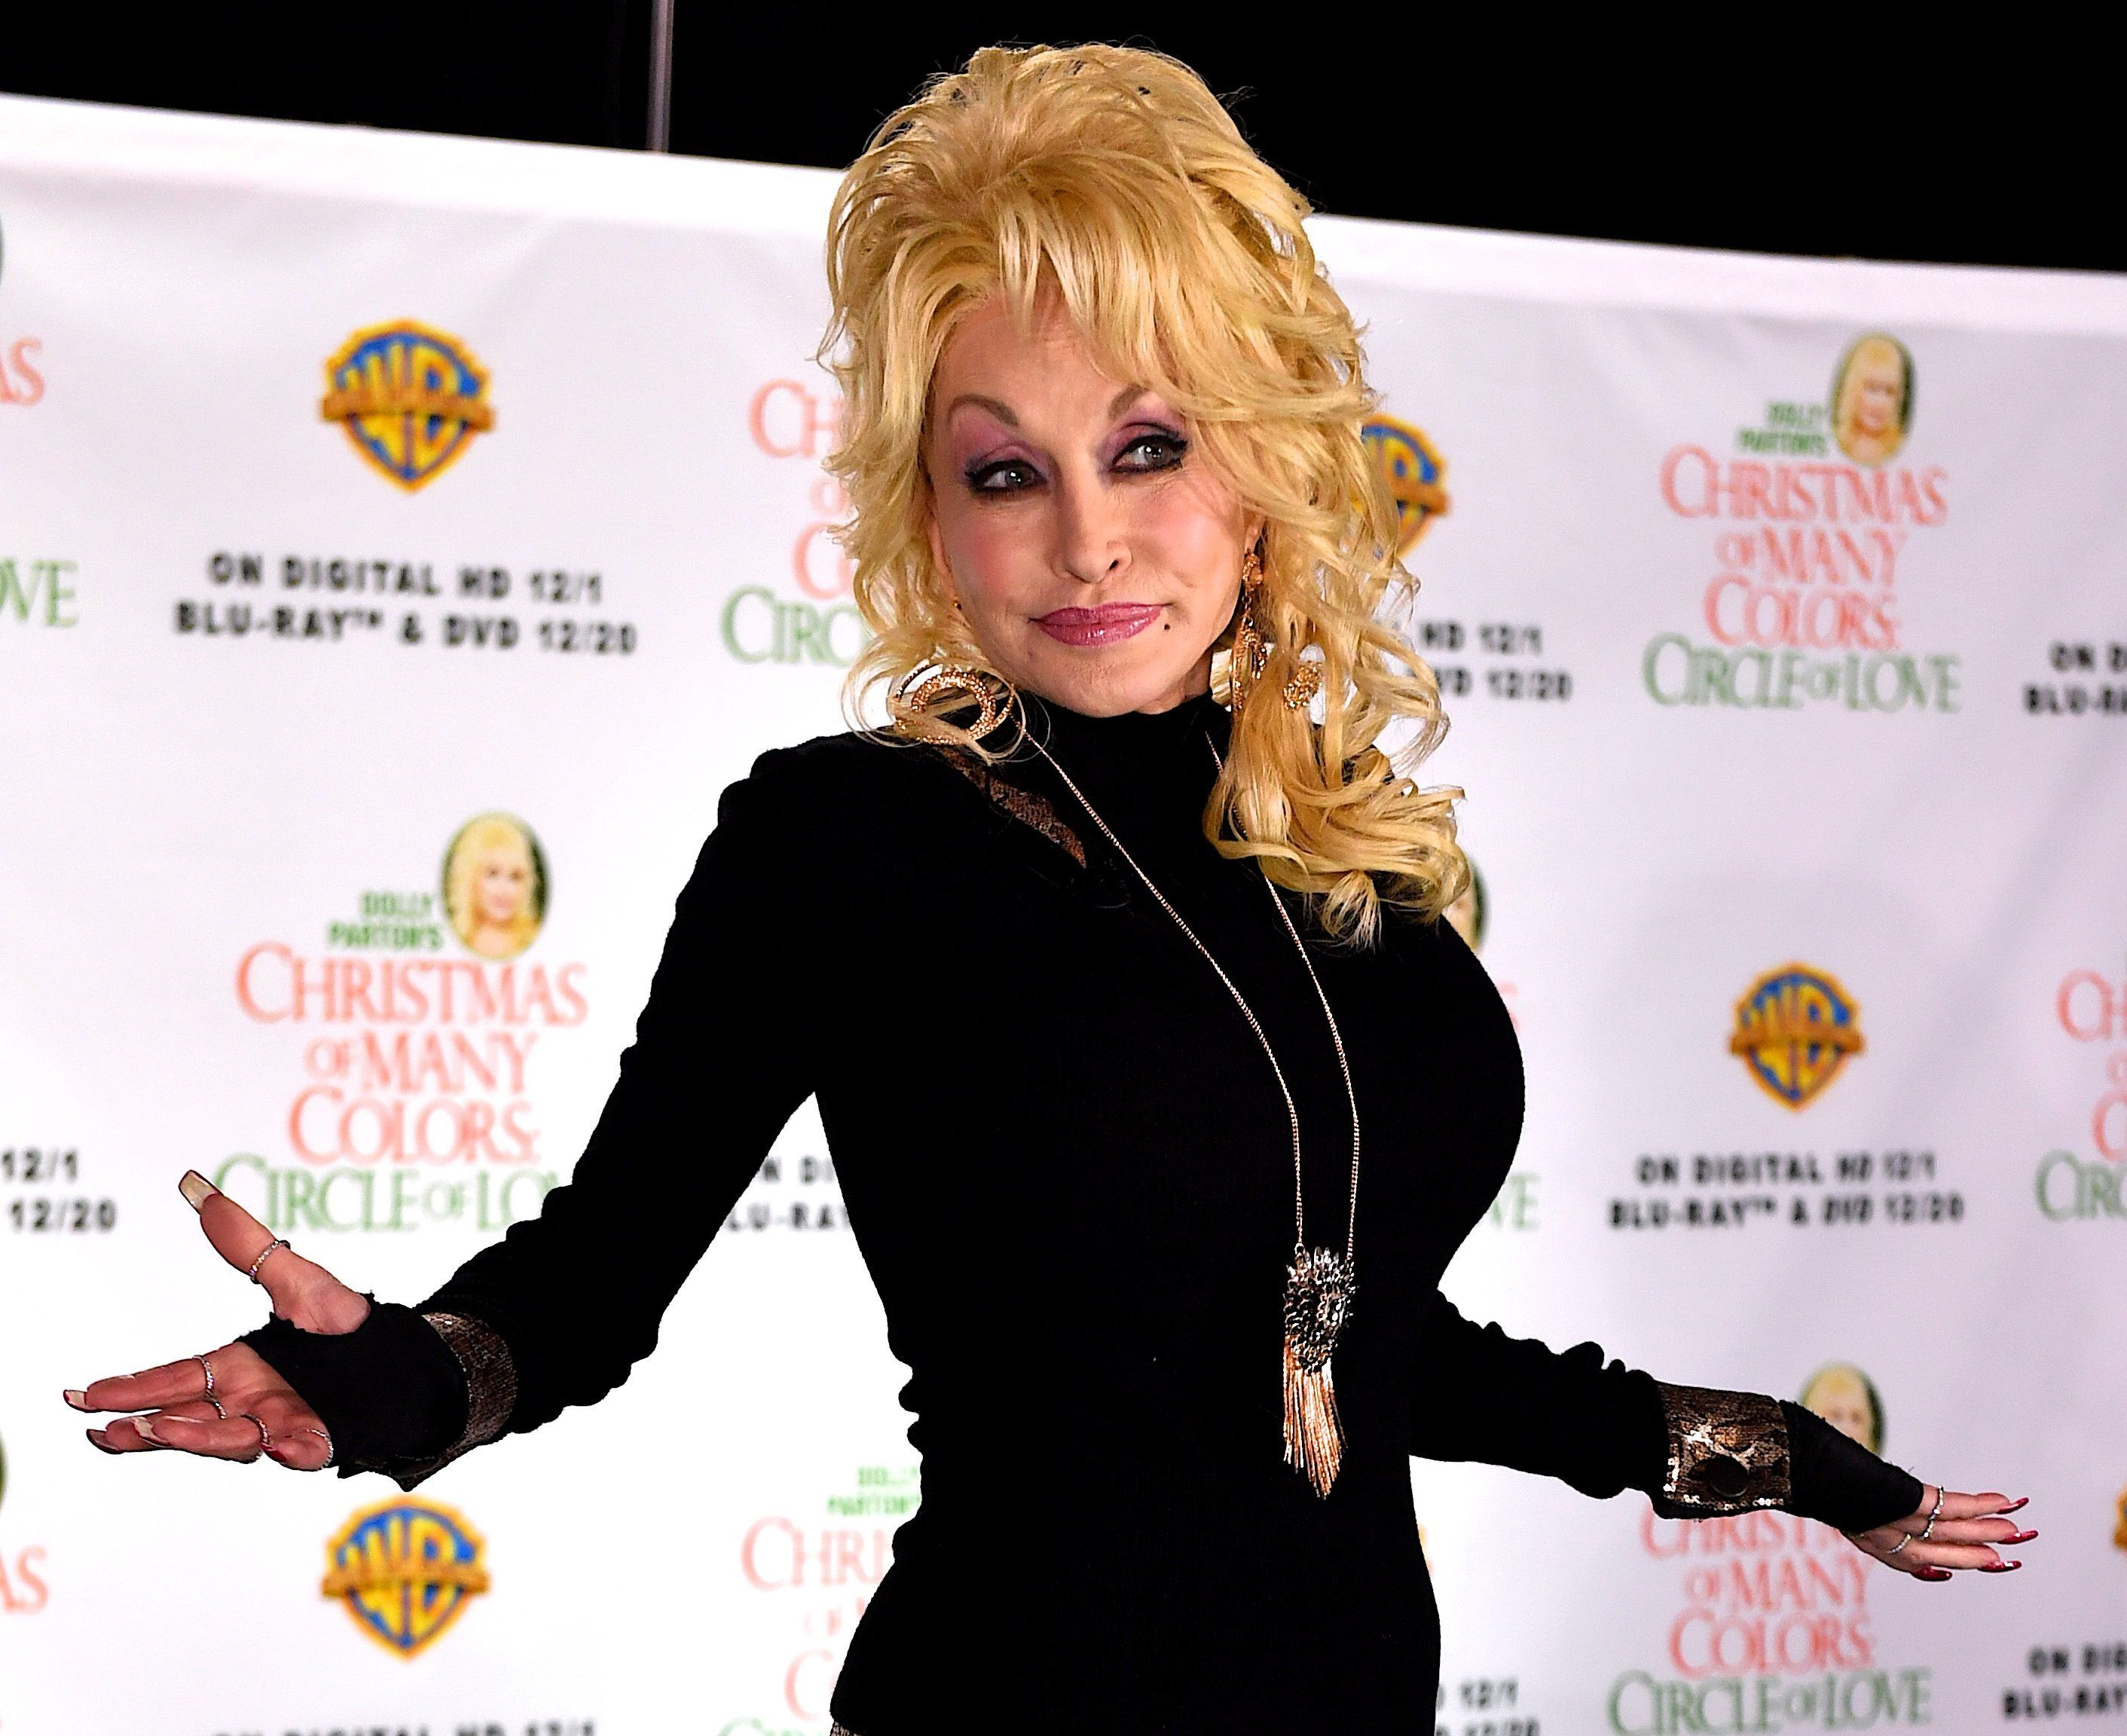 Graham Norton Reveals Dolly Parton's Trick For Keeping Her Waist Looking Perfect, And We're In Awe